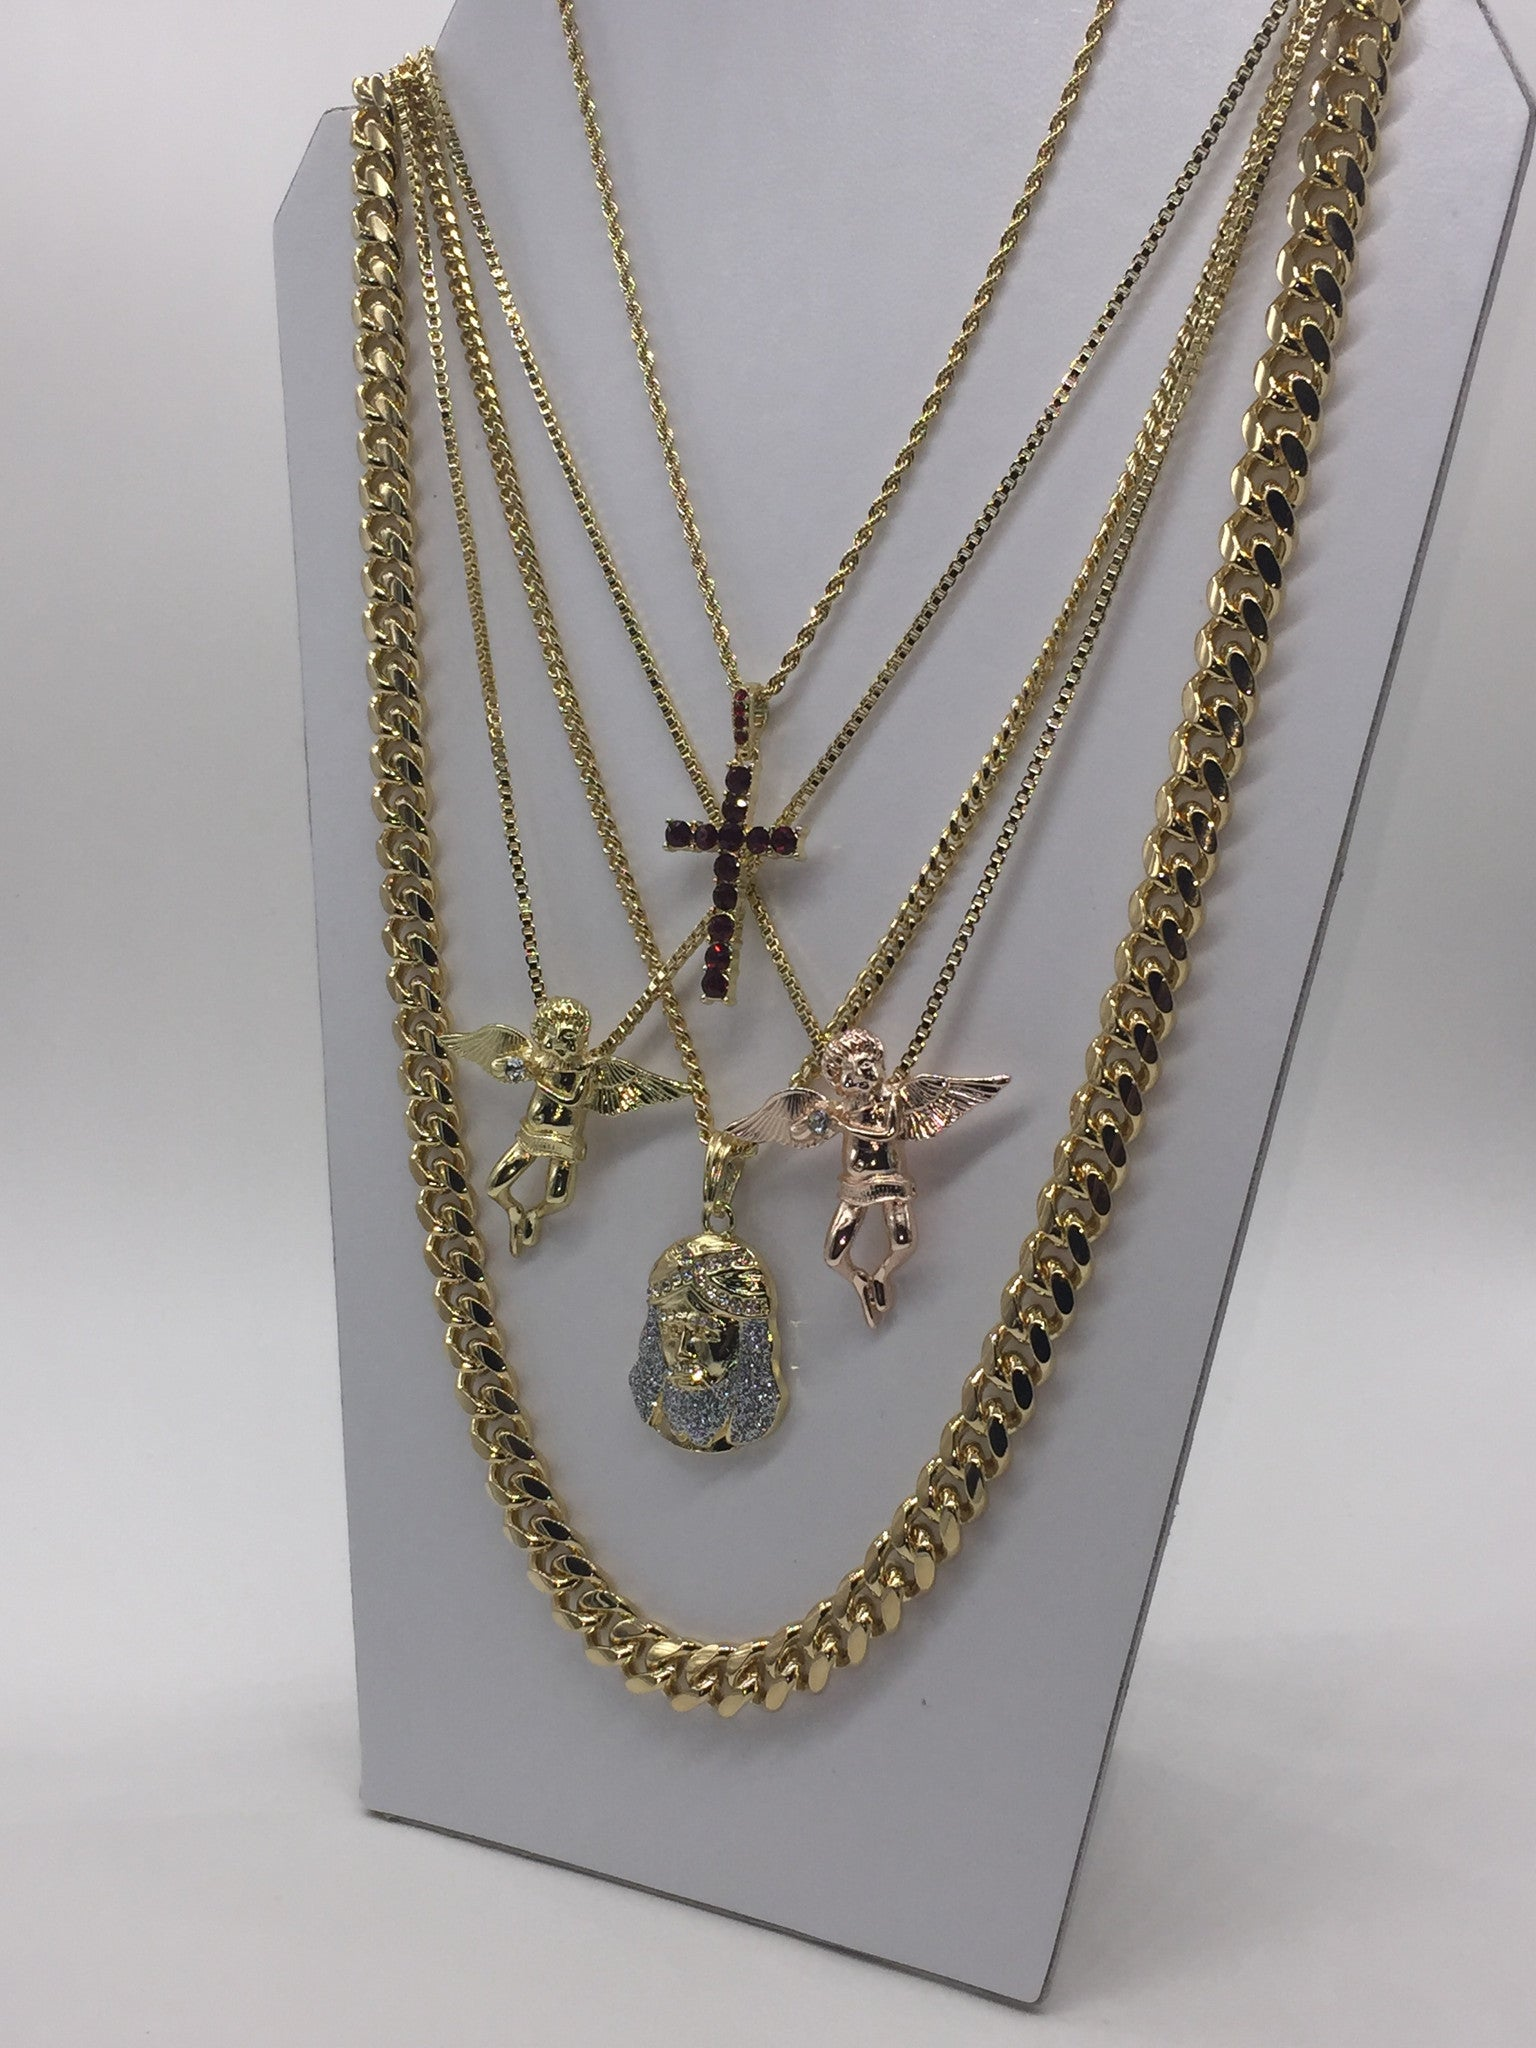 5 Chain Set: 18k Gold Plated Rose Gold Flute Angel, Gold Flute Angel, Red Ice Cross, and Iced Out Jesus Piece